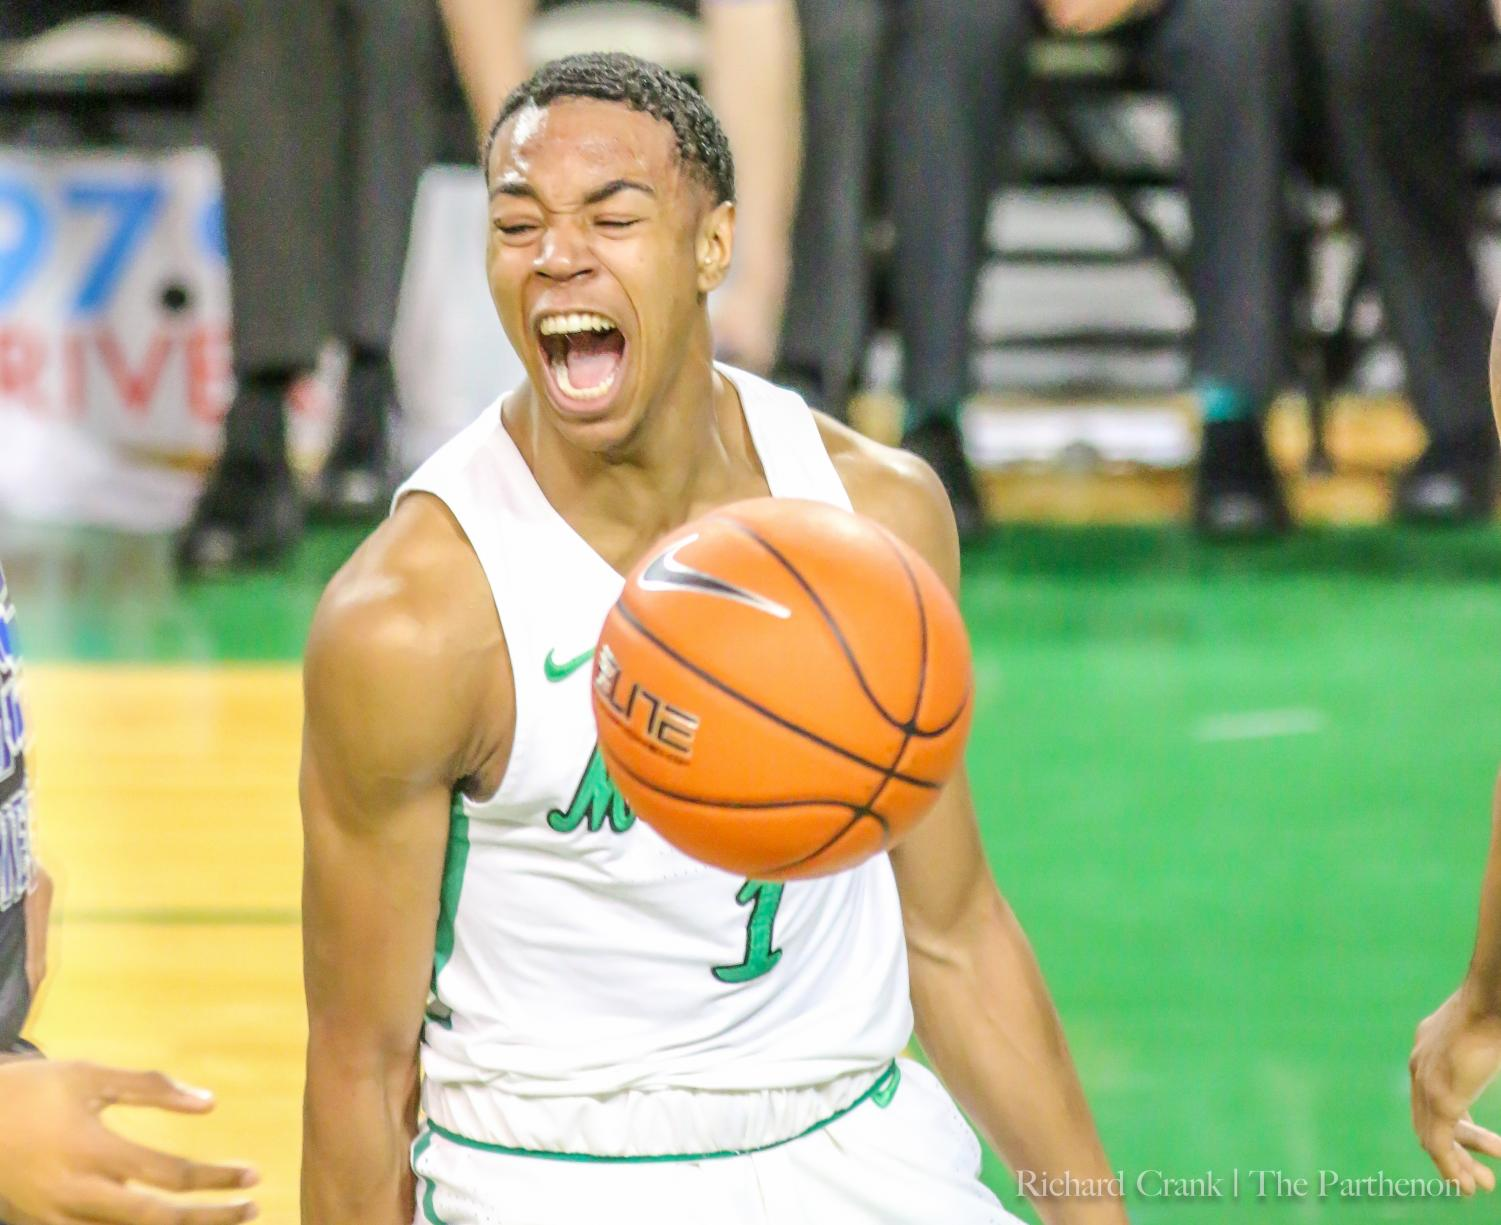 Marshall guard Taevion Kinsey (1) celebrates a dunk during the Thundering Herd's game against Middle Tennessee at the Cam Henderson Center.